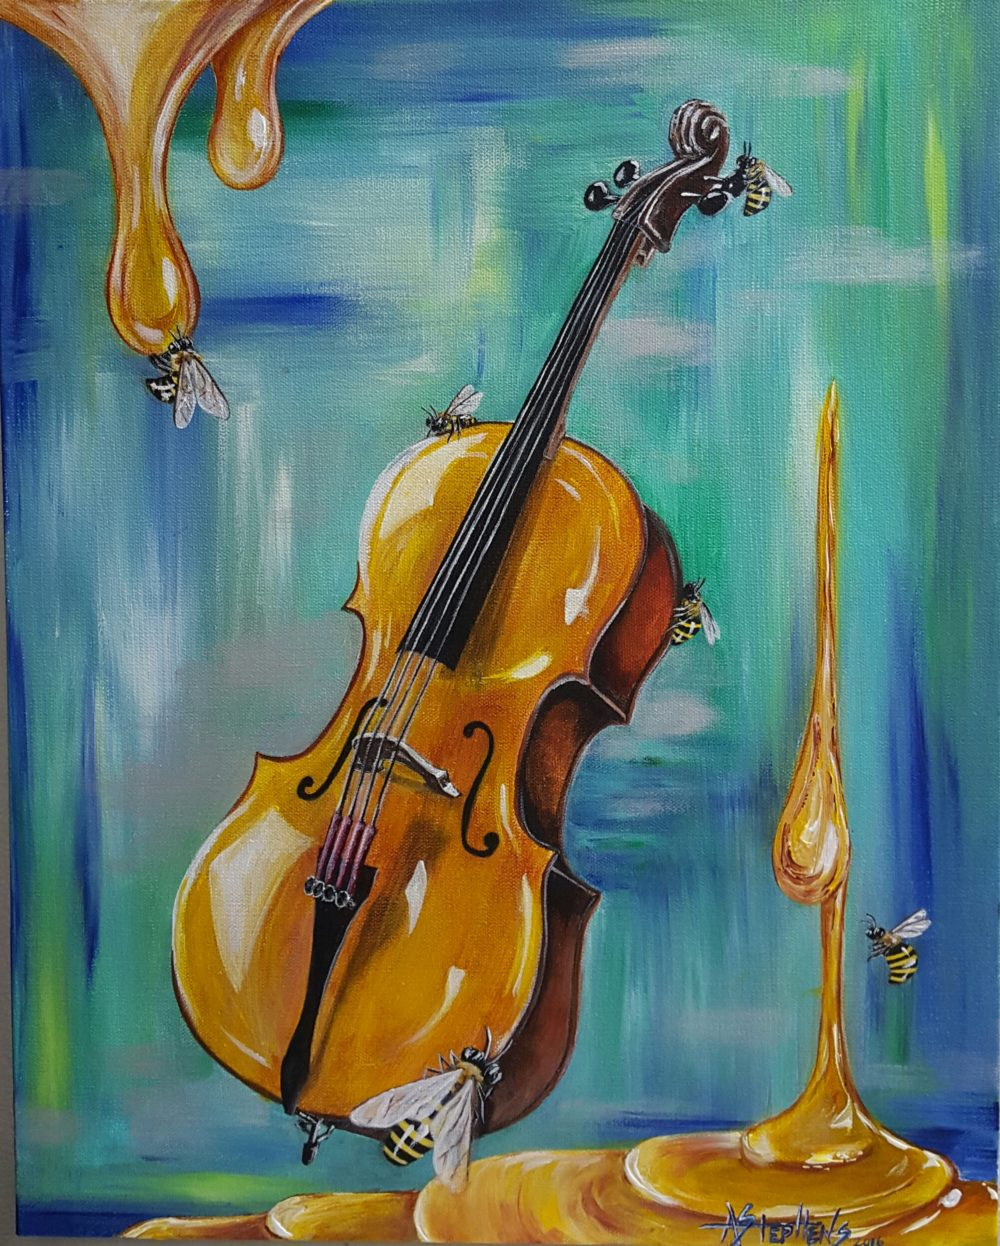 Painting of cello on blue background with dripping honey